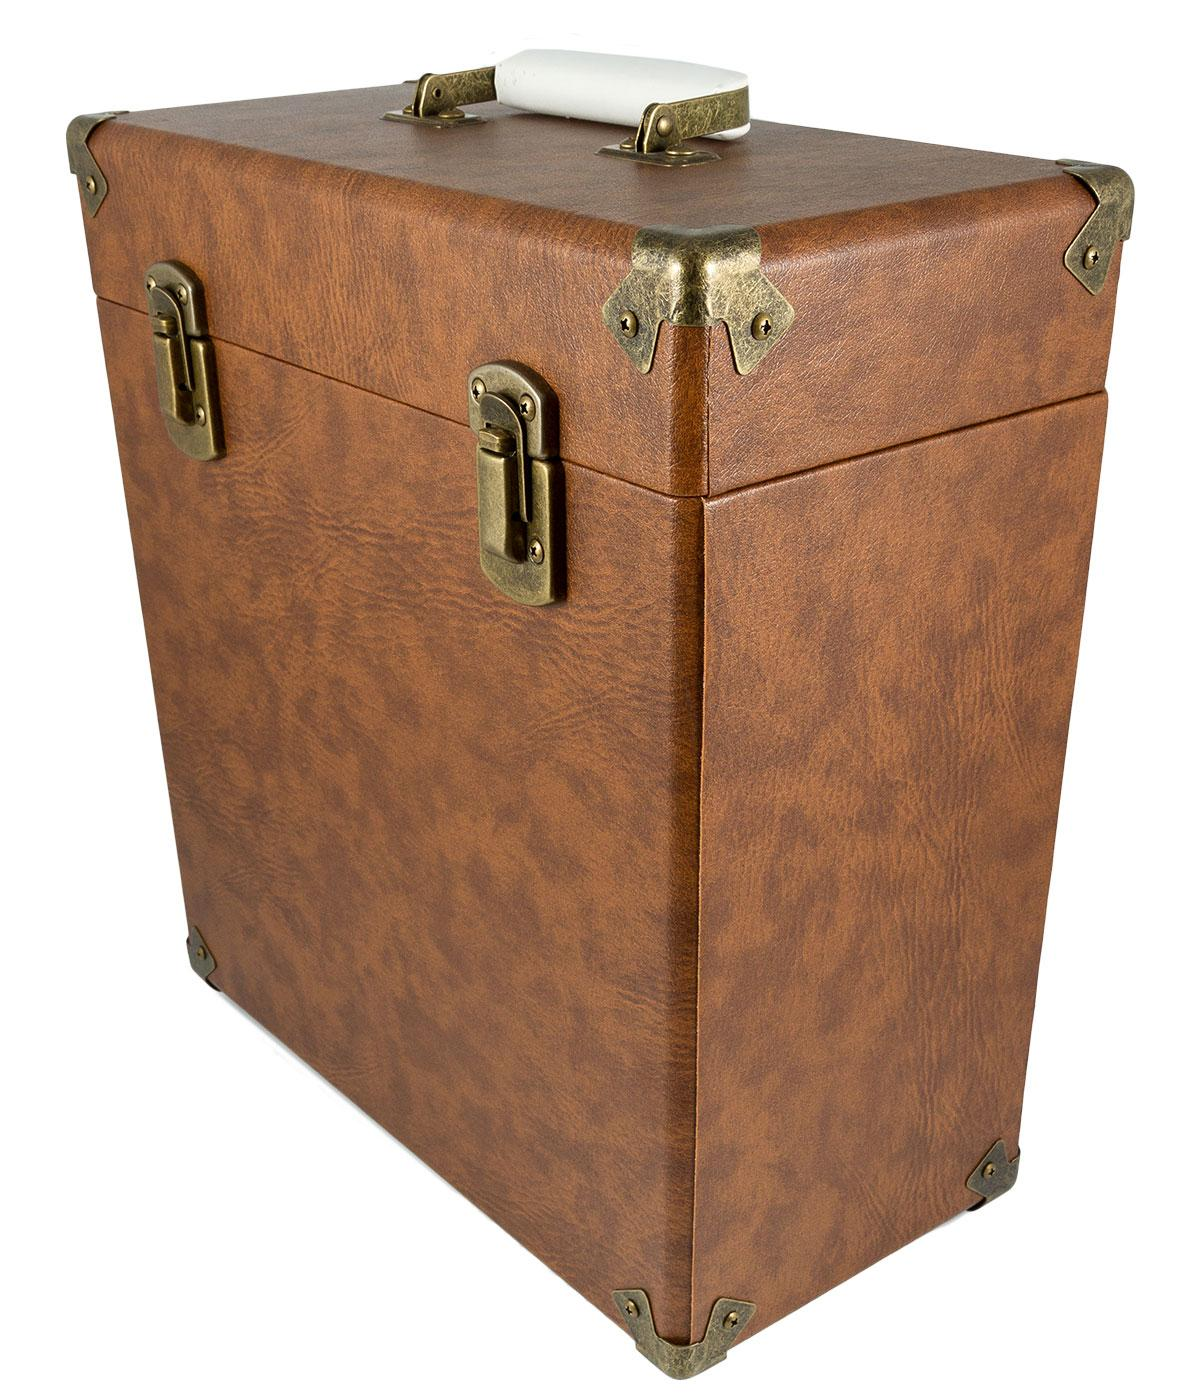 GPO Retro Vinyl Case | 60s Mod LP Record Box BROWN